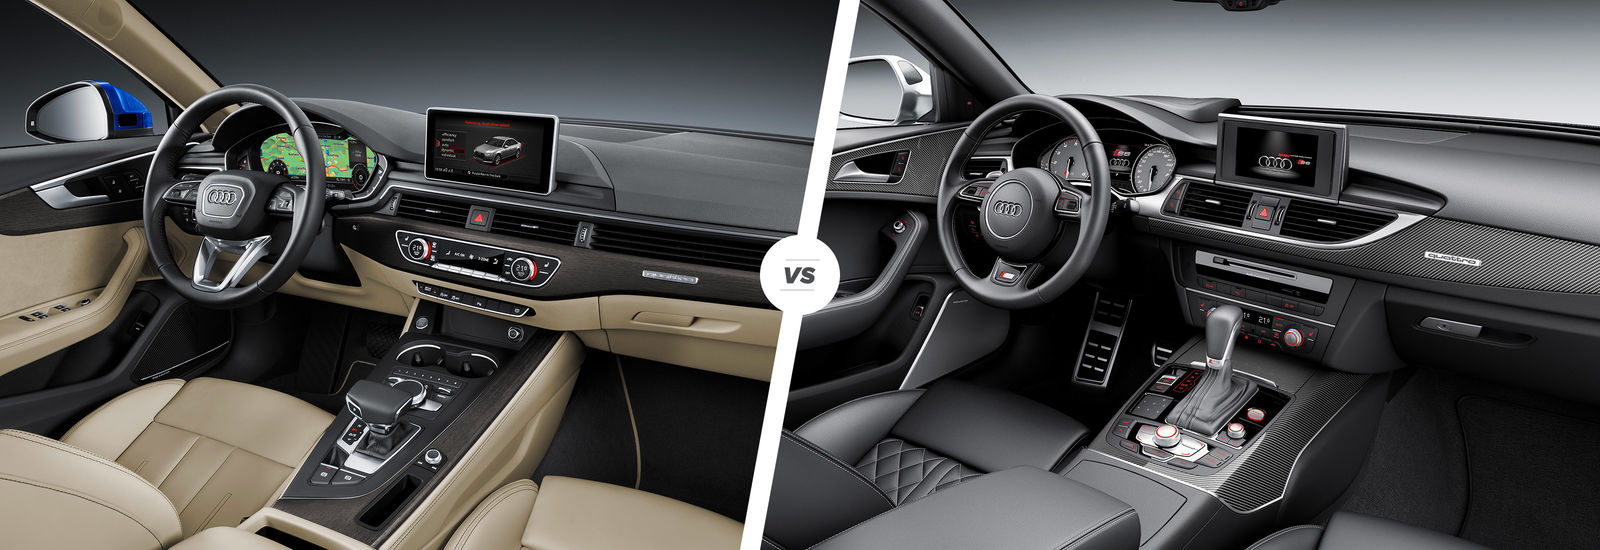 Comparison Of Audi A4 And Audi A6 Interior Dashboards